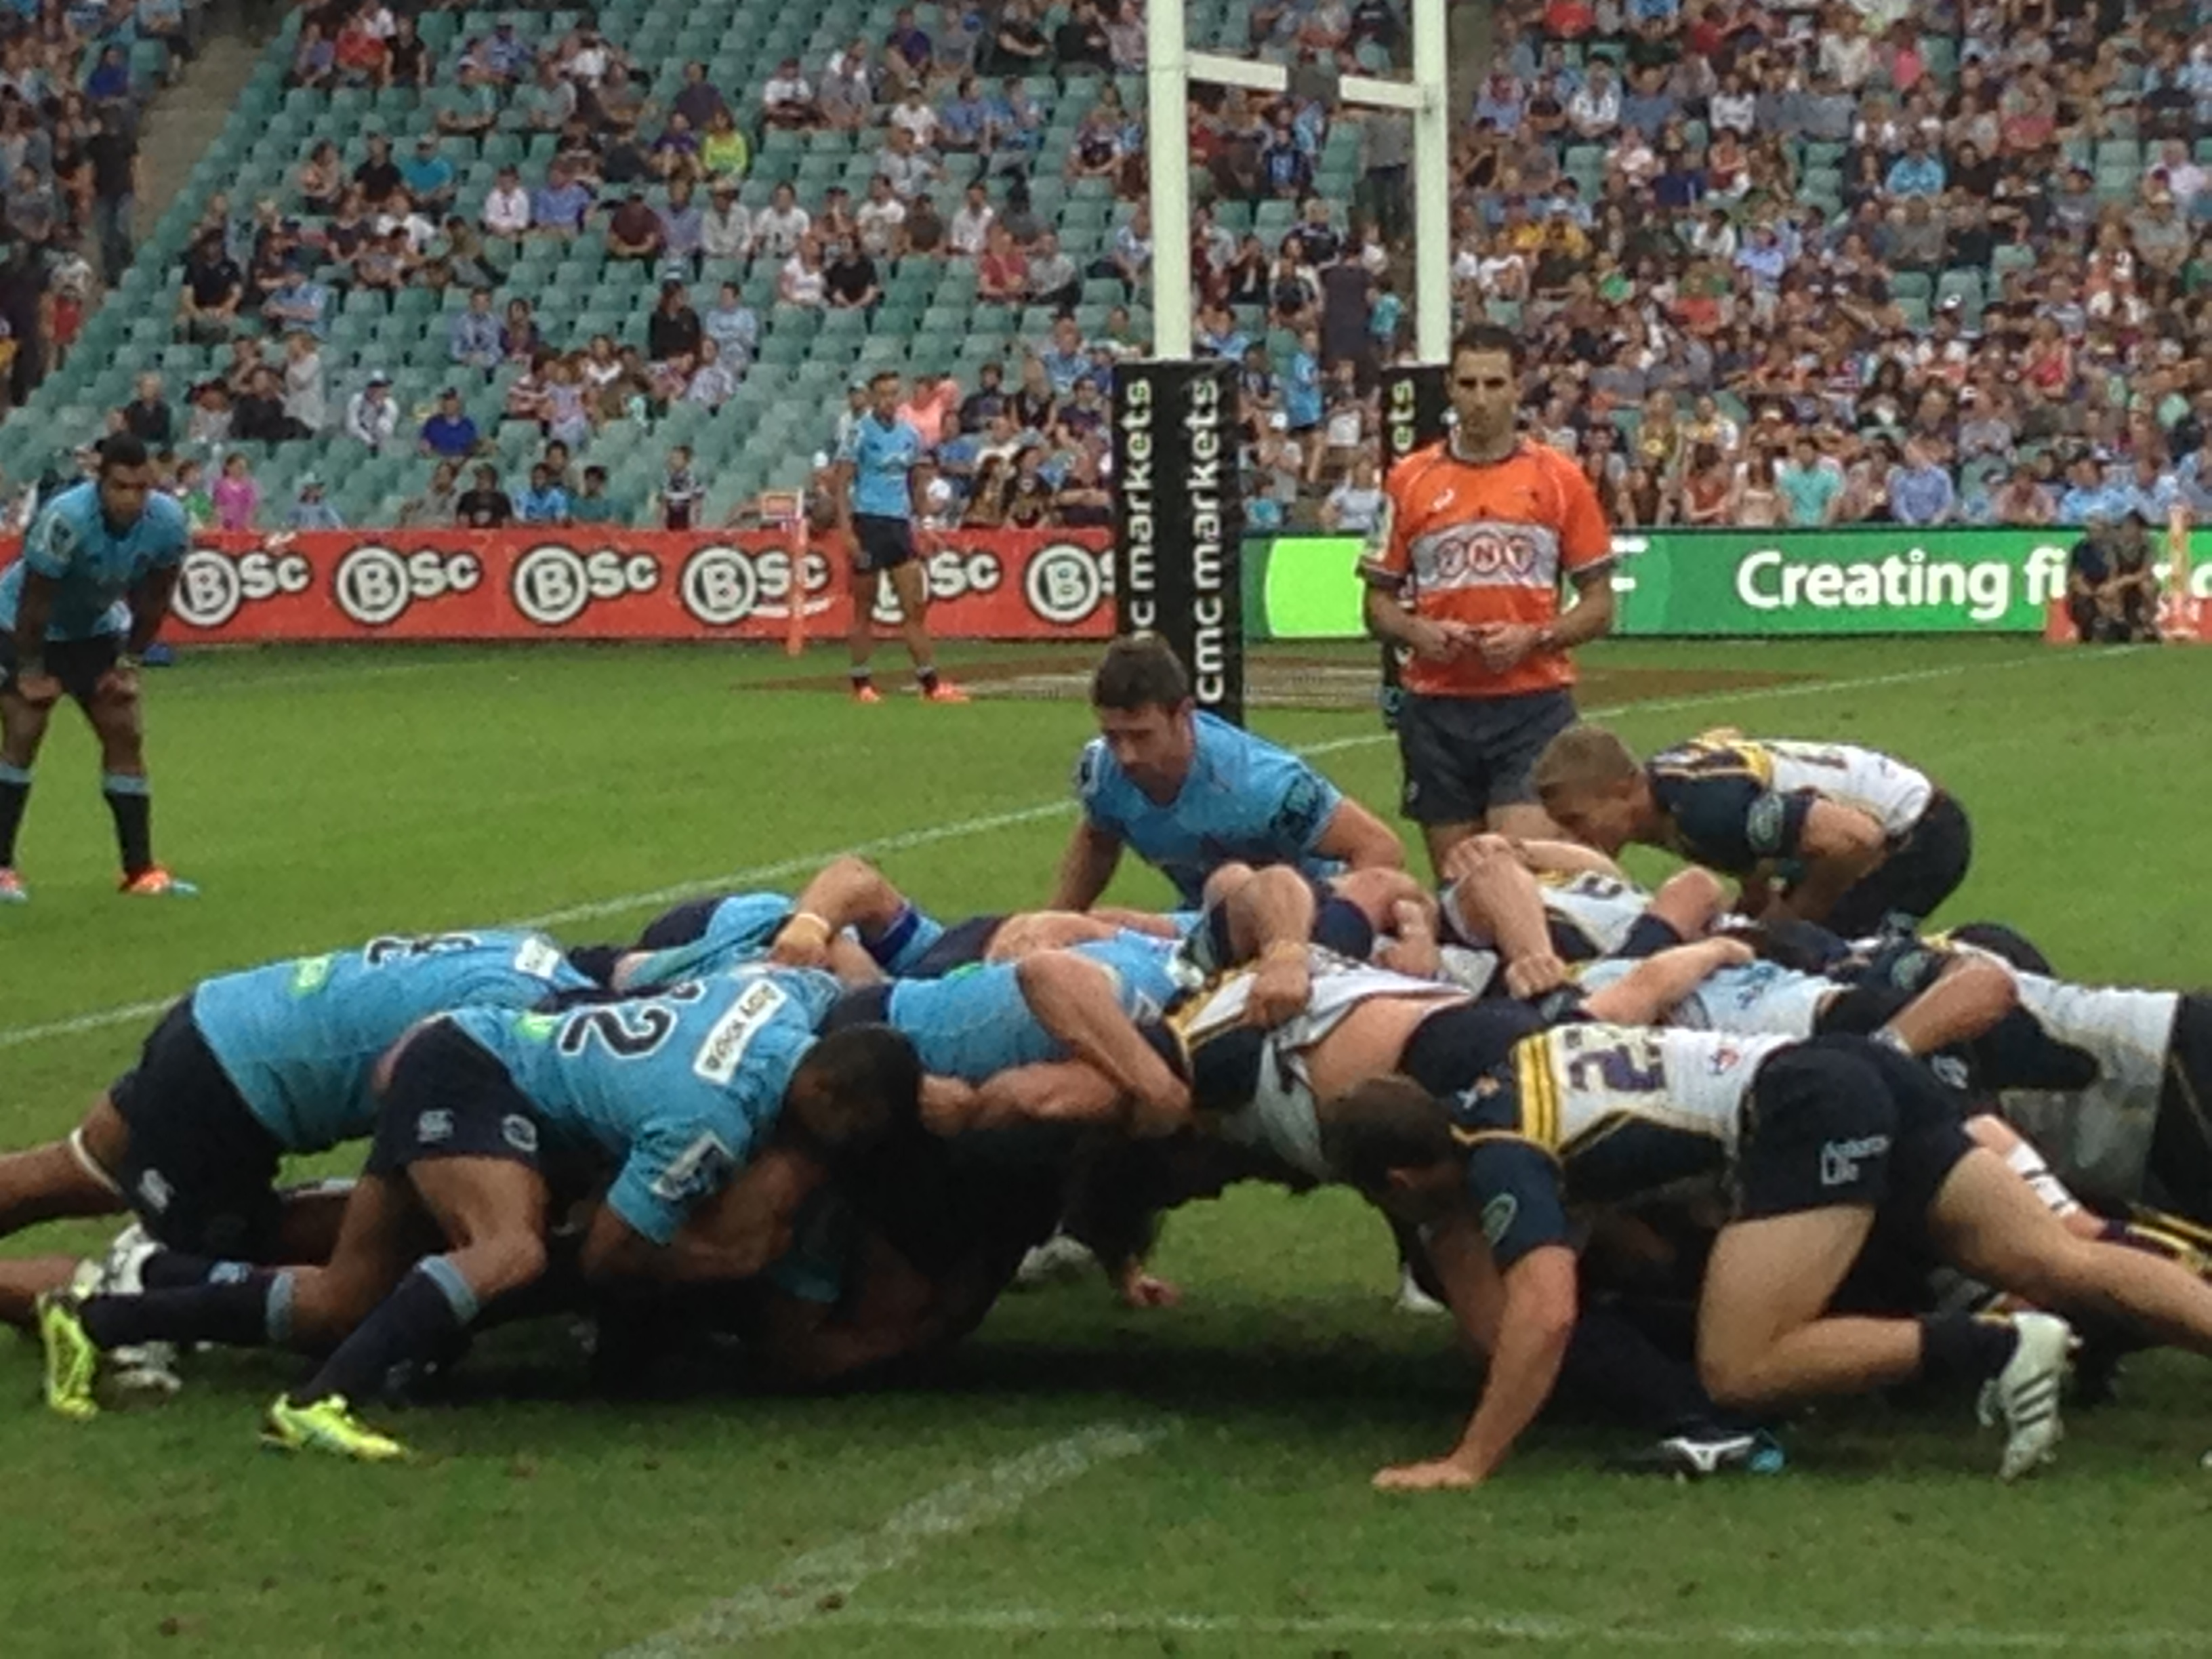 Close enough for us — but not close enough for the Brumbies